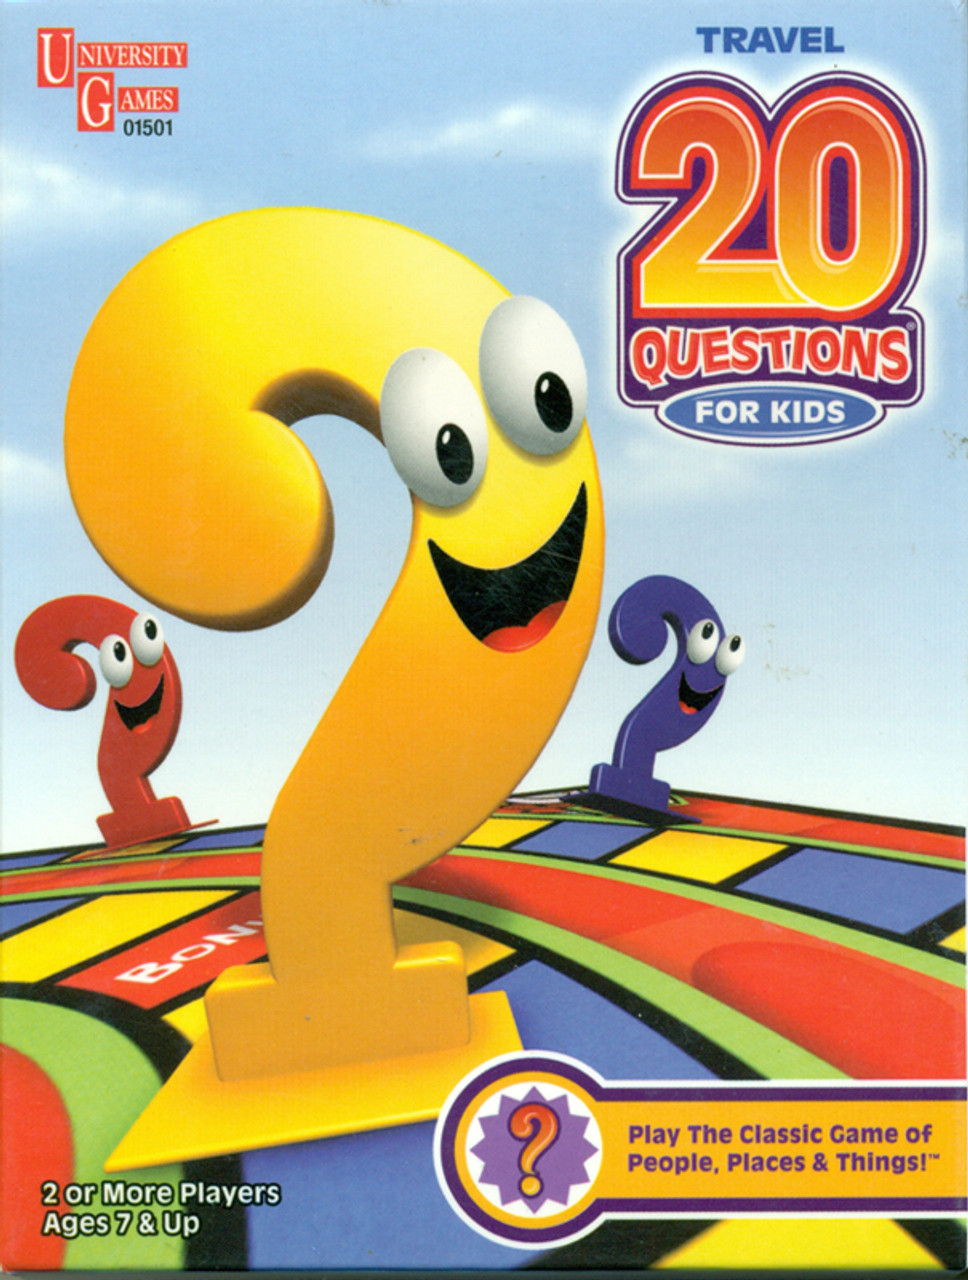 21 Questions Game: Best Questions To Ask [2020] - Looxcie